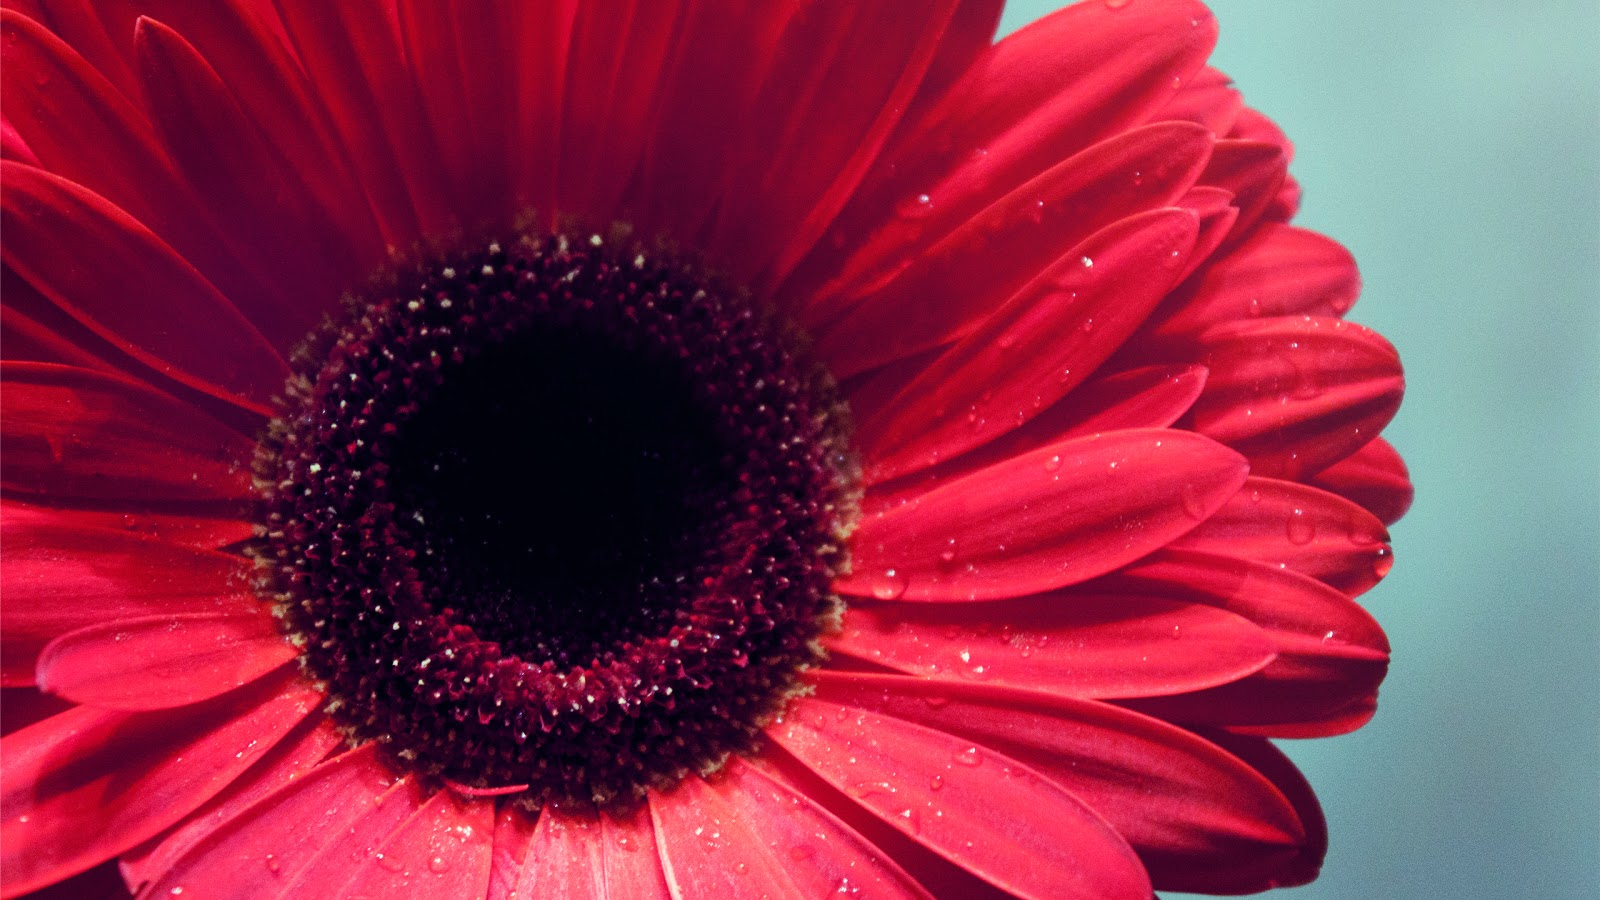 http://1.bp.blogspot.com/-LL-DifU2nhY/TZpBGLj_GbI/AAAAAAAAHk8/VJcLT4Jd8I0/s1600/Epic+Red+Flower+Nature+Wallpapers+2560x1440.jpg